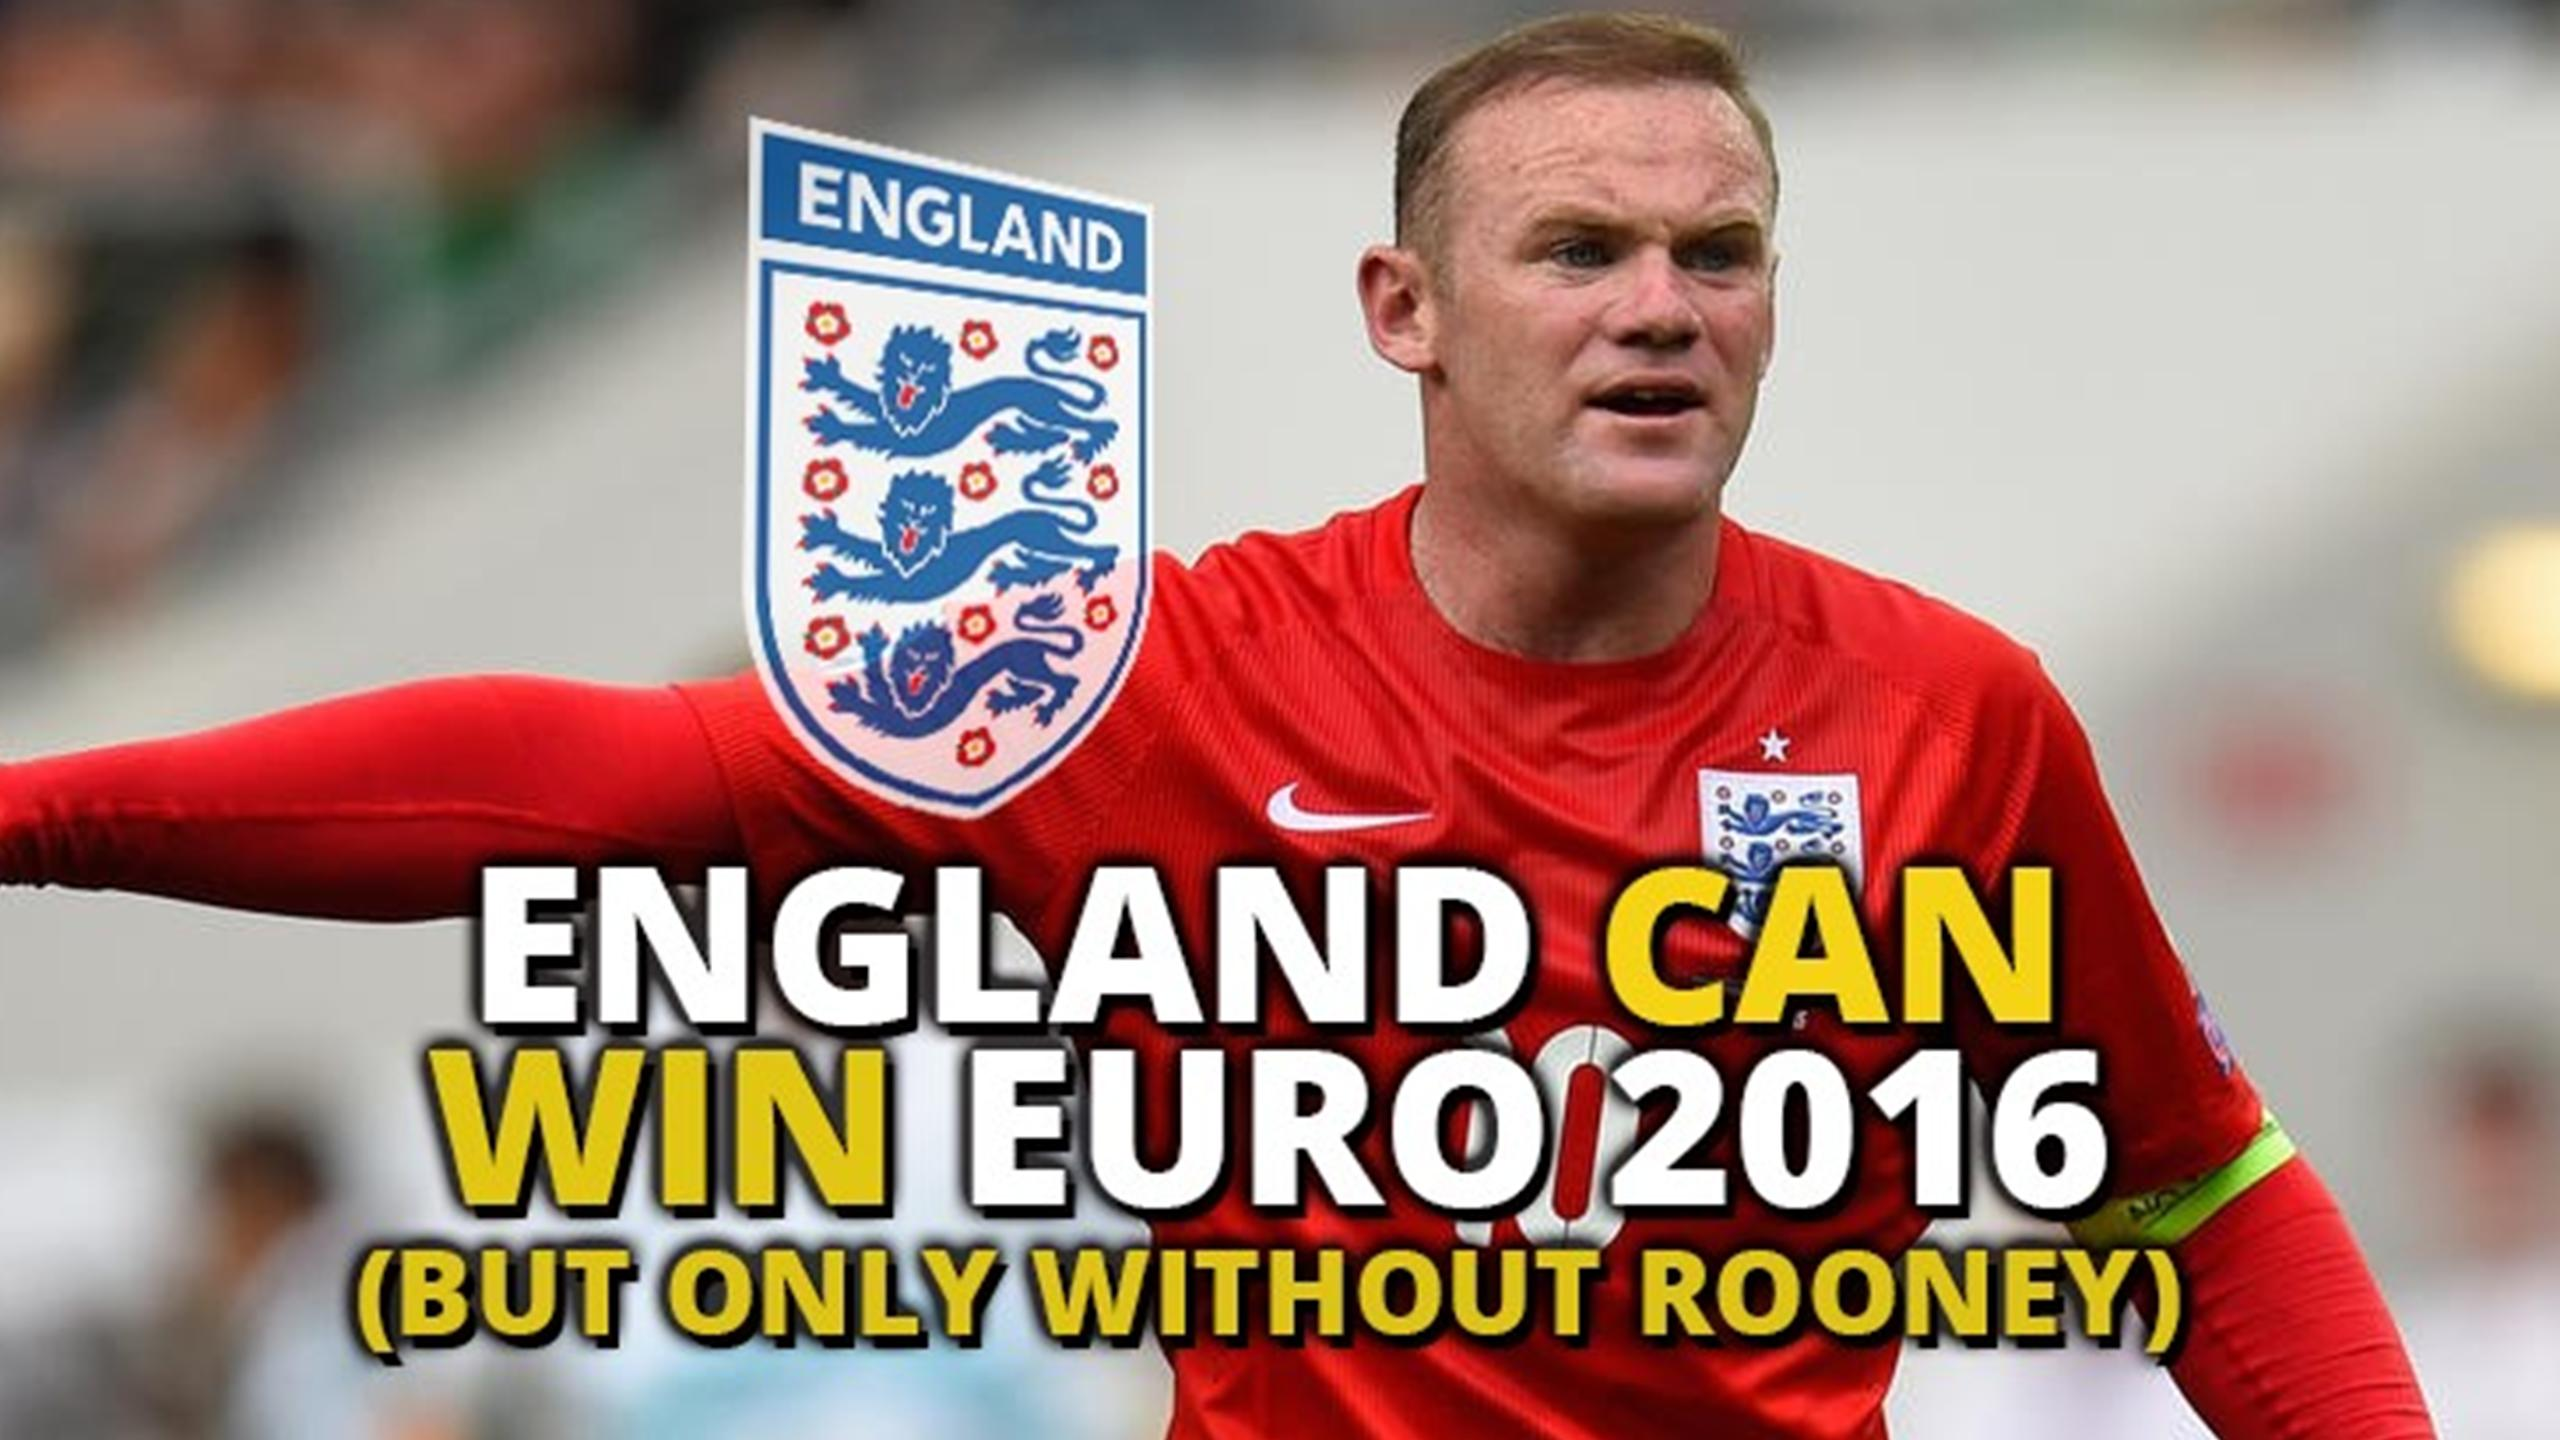 England can win Euro 2016 - but only without Rooney